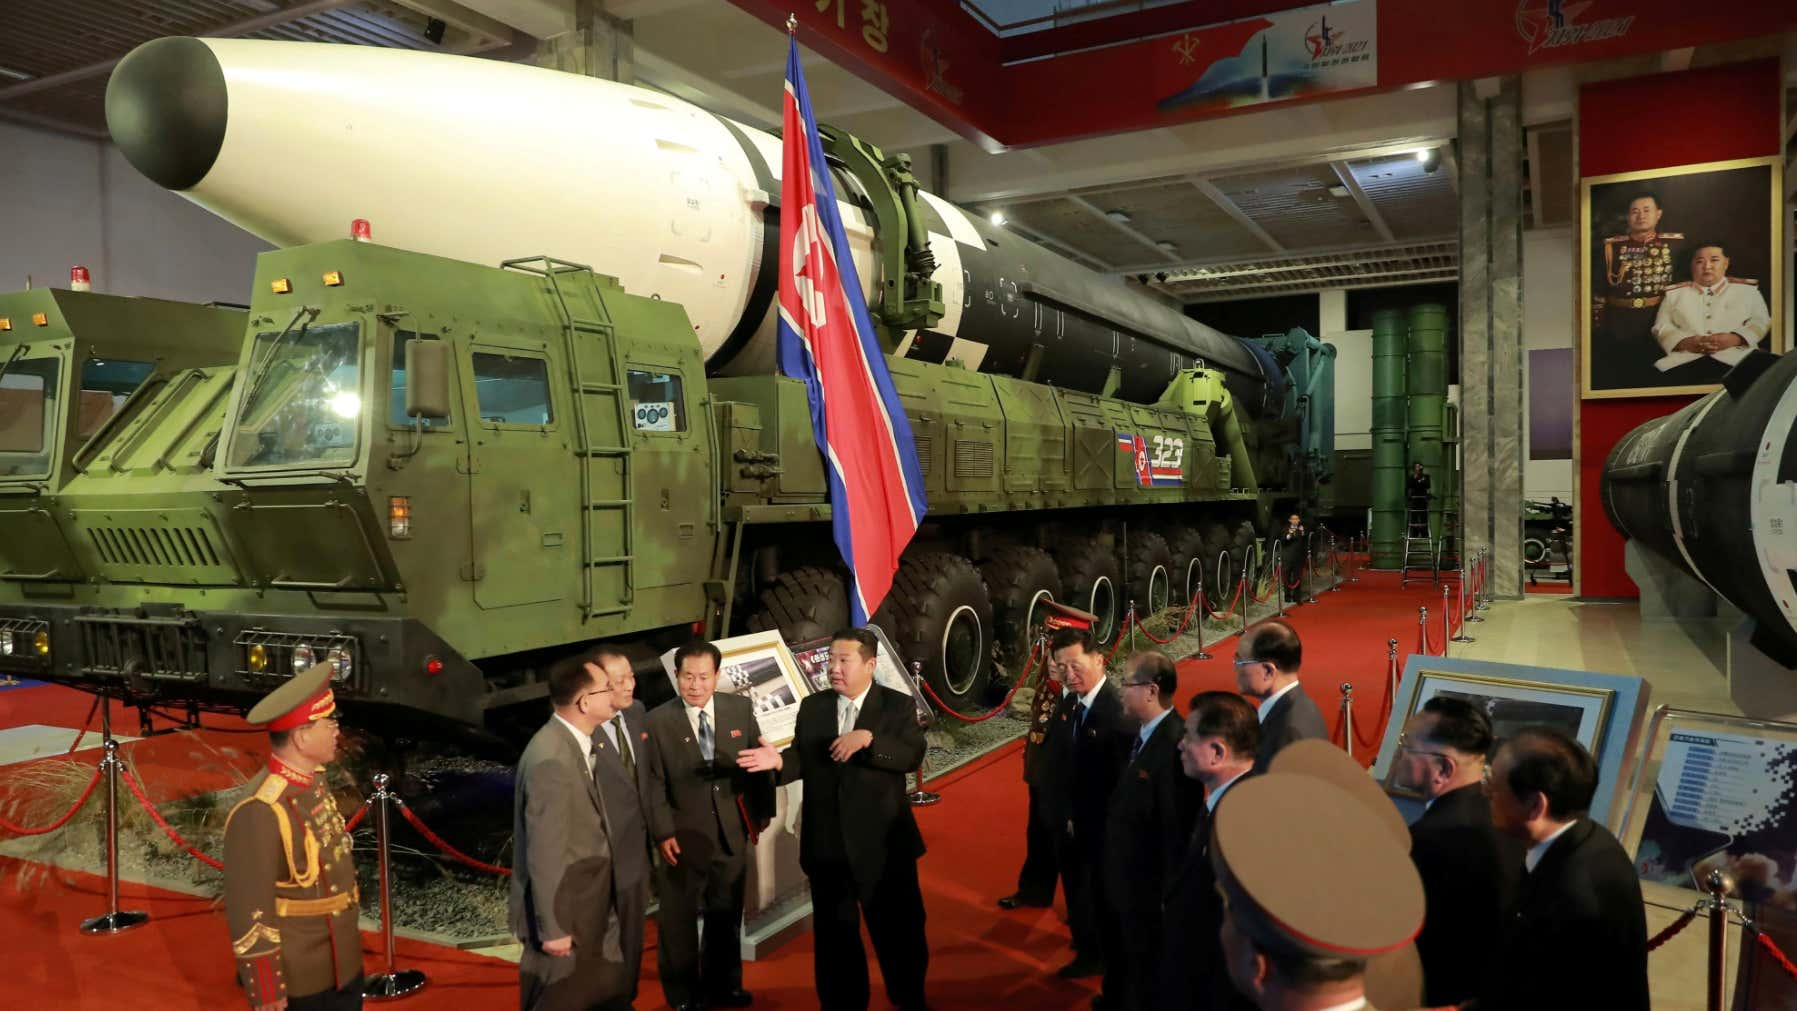 https://www.thedrive.com/content-b/message-editor%2F1634055379176-north_korean_icbm_exhibition.jpg?quality=60